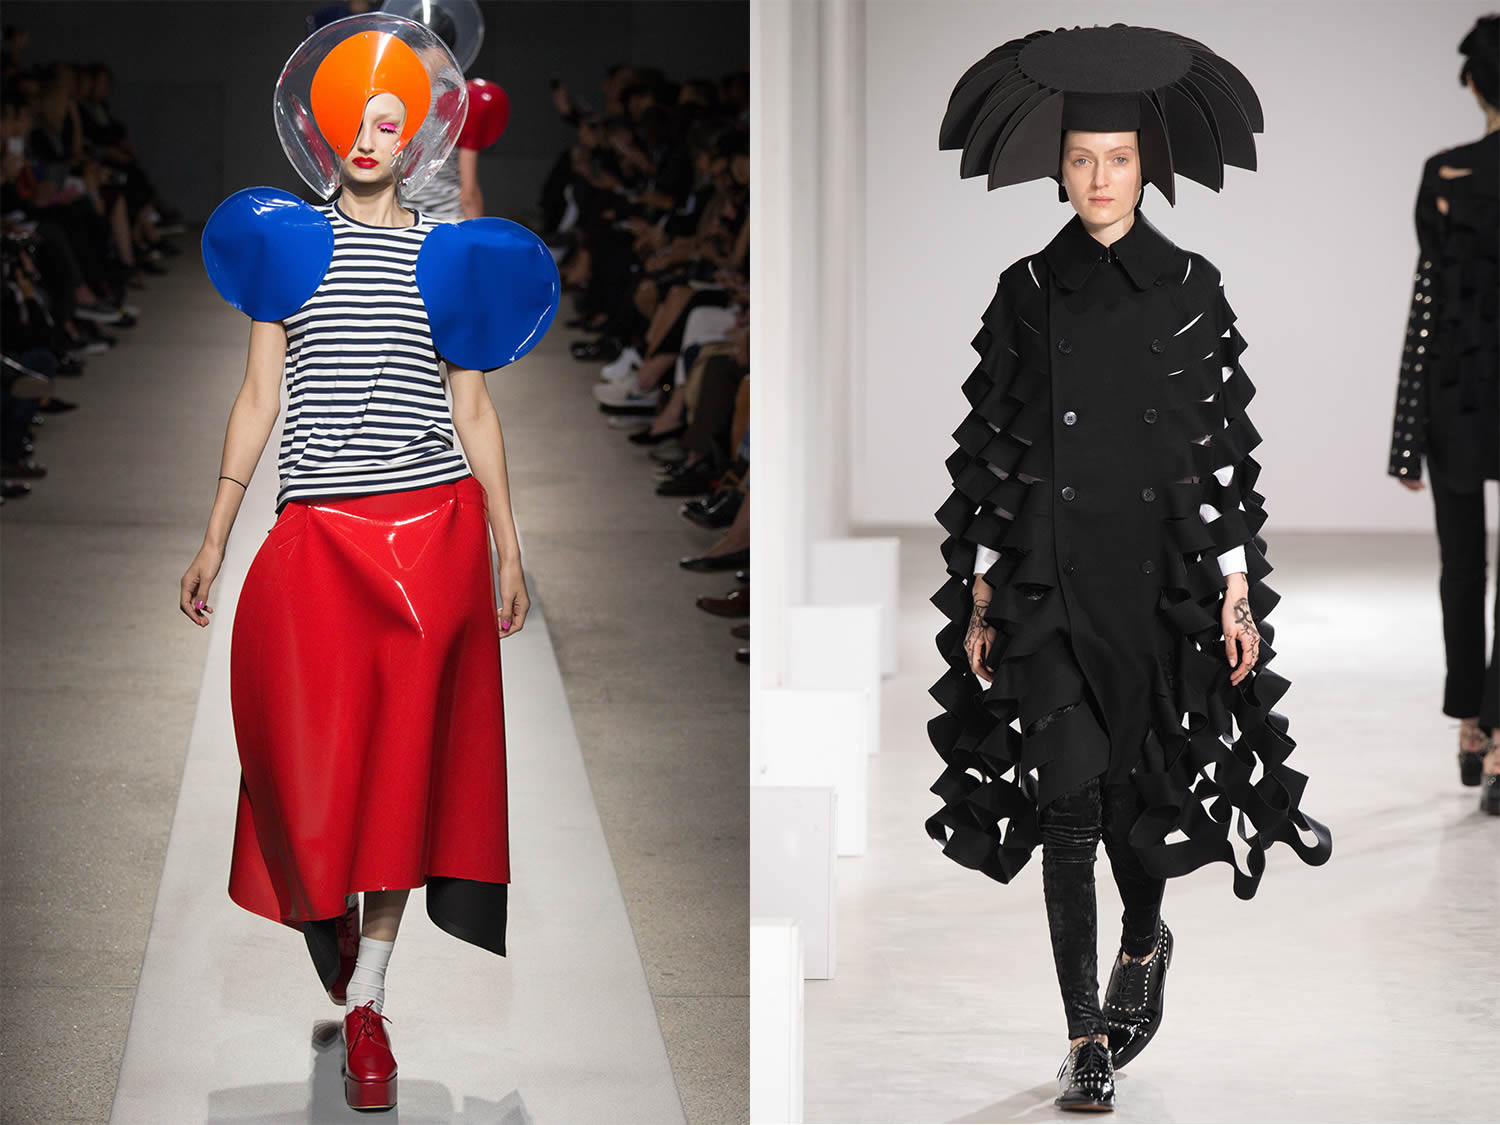 dresses 2015, fashion by Junya Watanabe